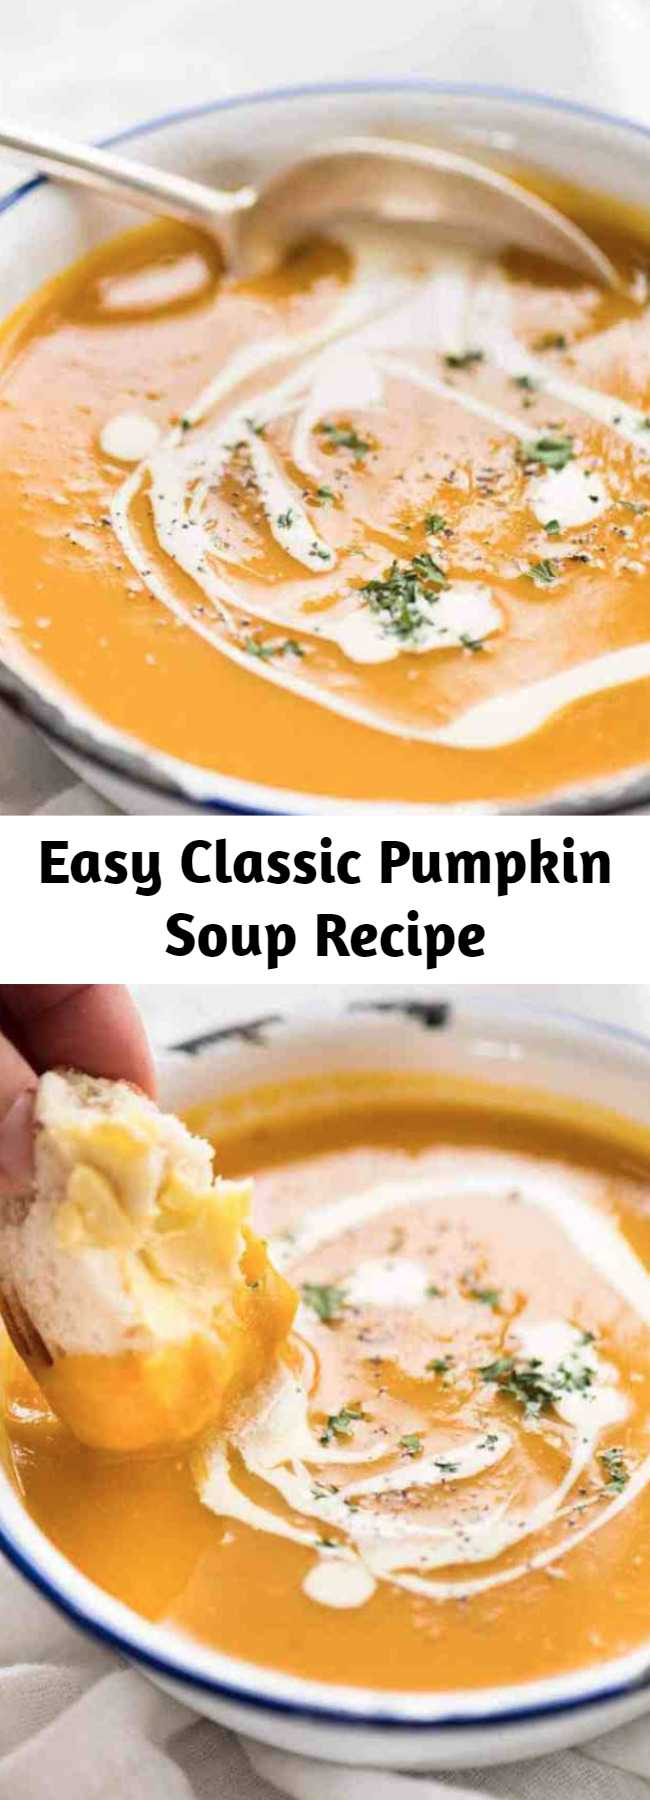 Easy Classic Pumpkin Soup Recipe - This is a classic, easy pumpkin soup made with fresh pumpkin that is very fast to make. Thick, creamy and full of flavour, this is THE pumpkin soup recipe you will make now and forever!